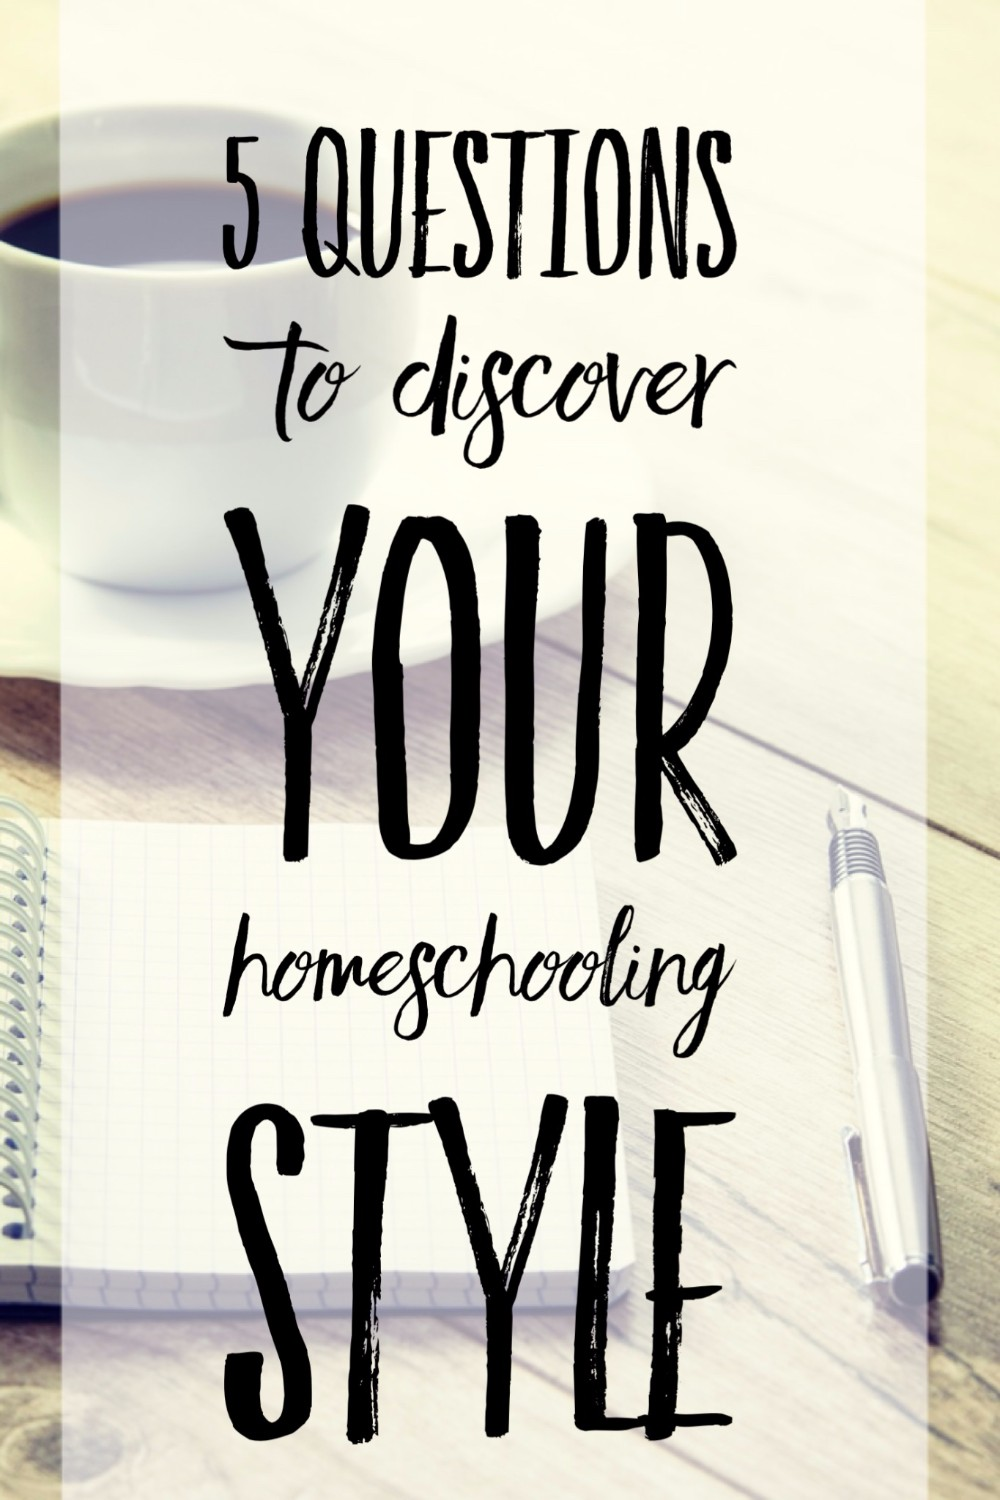 This is great. There are so many homeschool styles and homeschool approaches this helped me find ours... unschooling